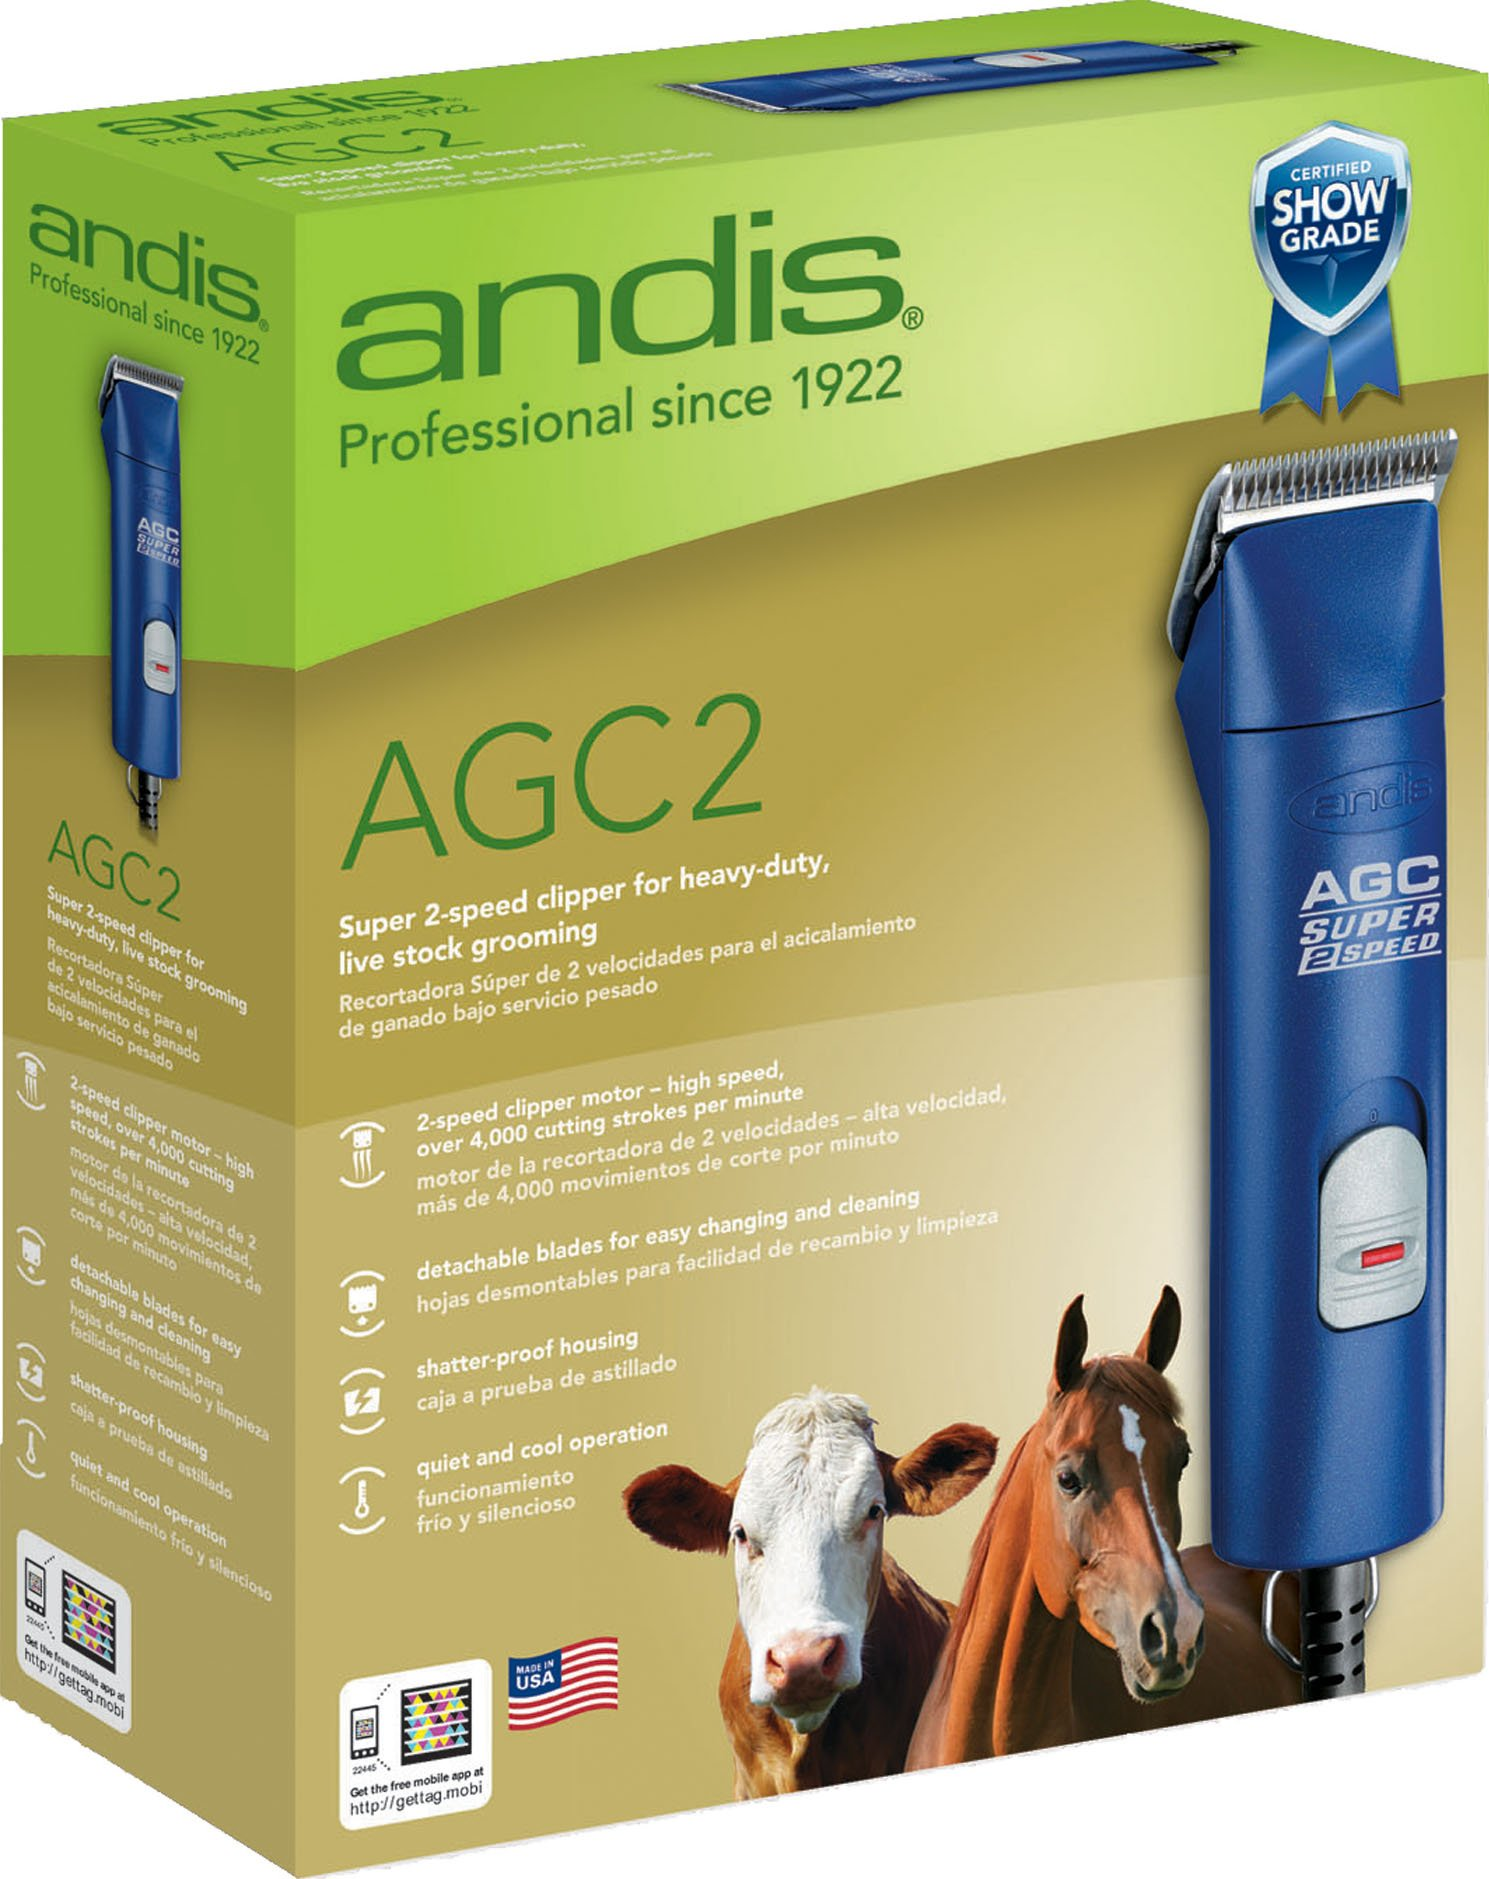 ANDIS Company Equine Agc2 Super 2-Speed Horse Clipper Blue 3400/4400 SPM by Andis